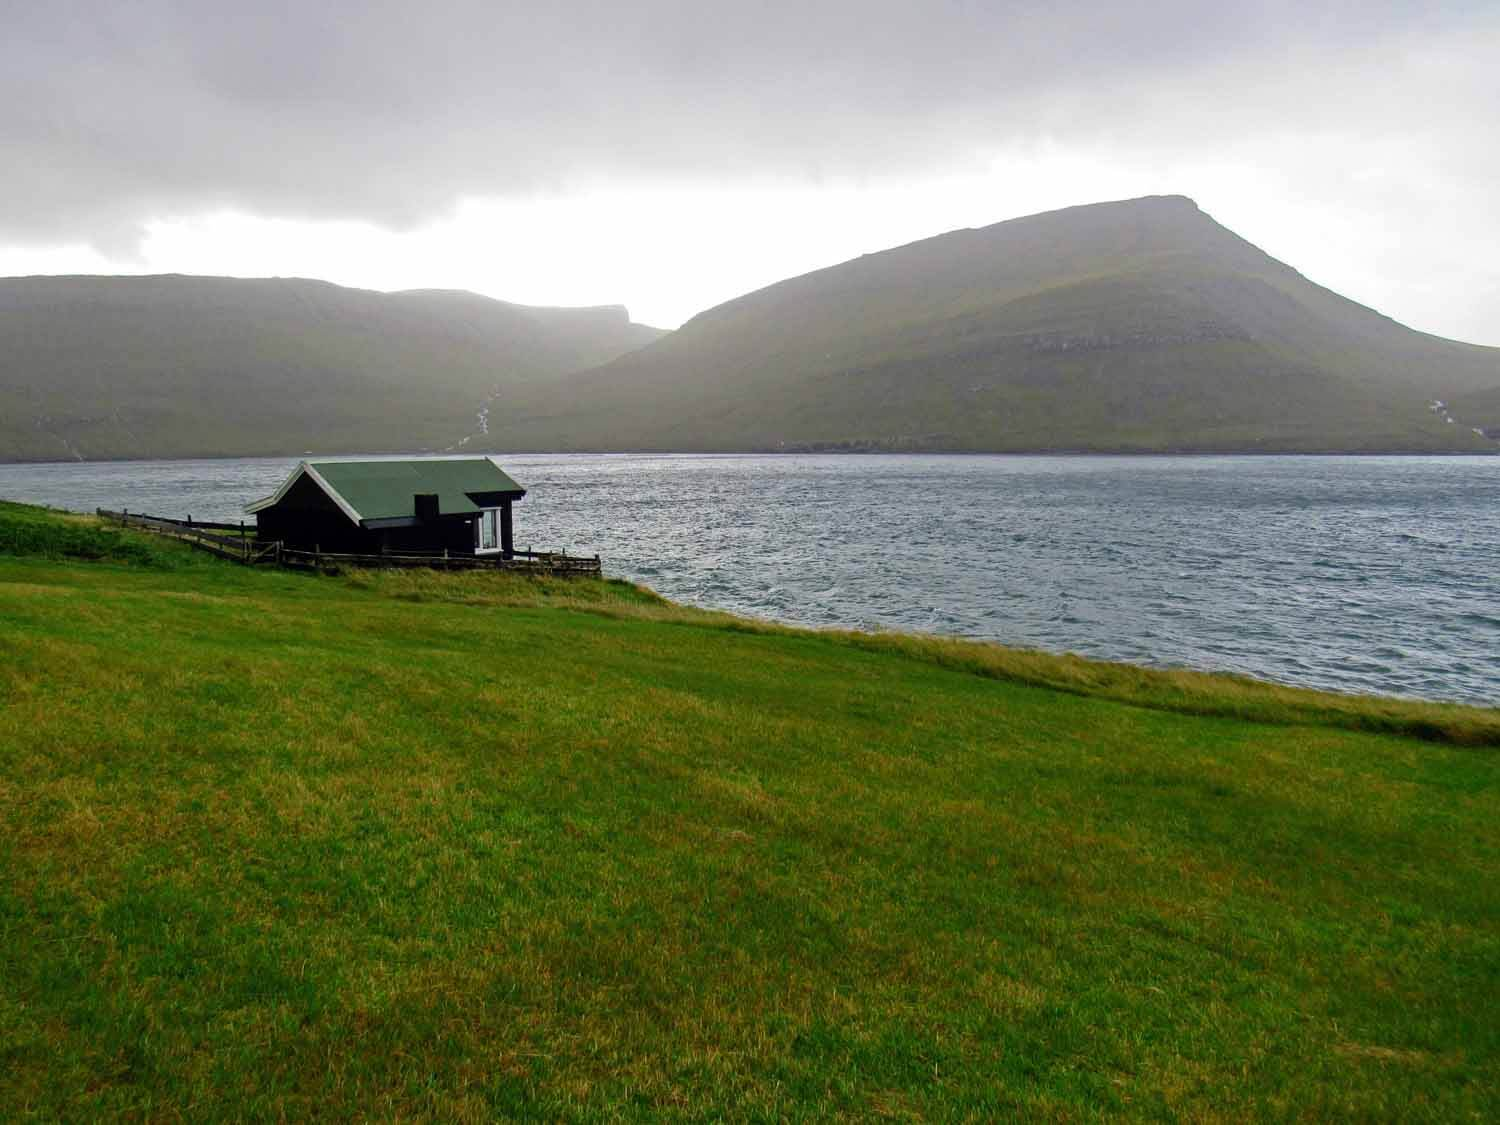 denmark-faroe-islands-vagar-boer-village-cottage-airbnb-rental-cozy-storm-ocean-bay.jpg